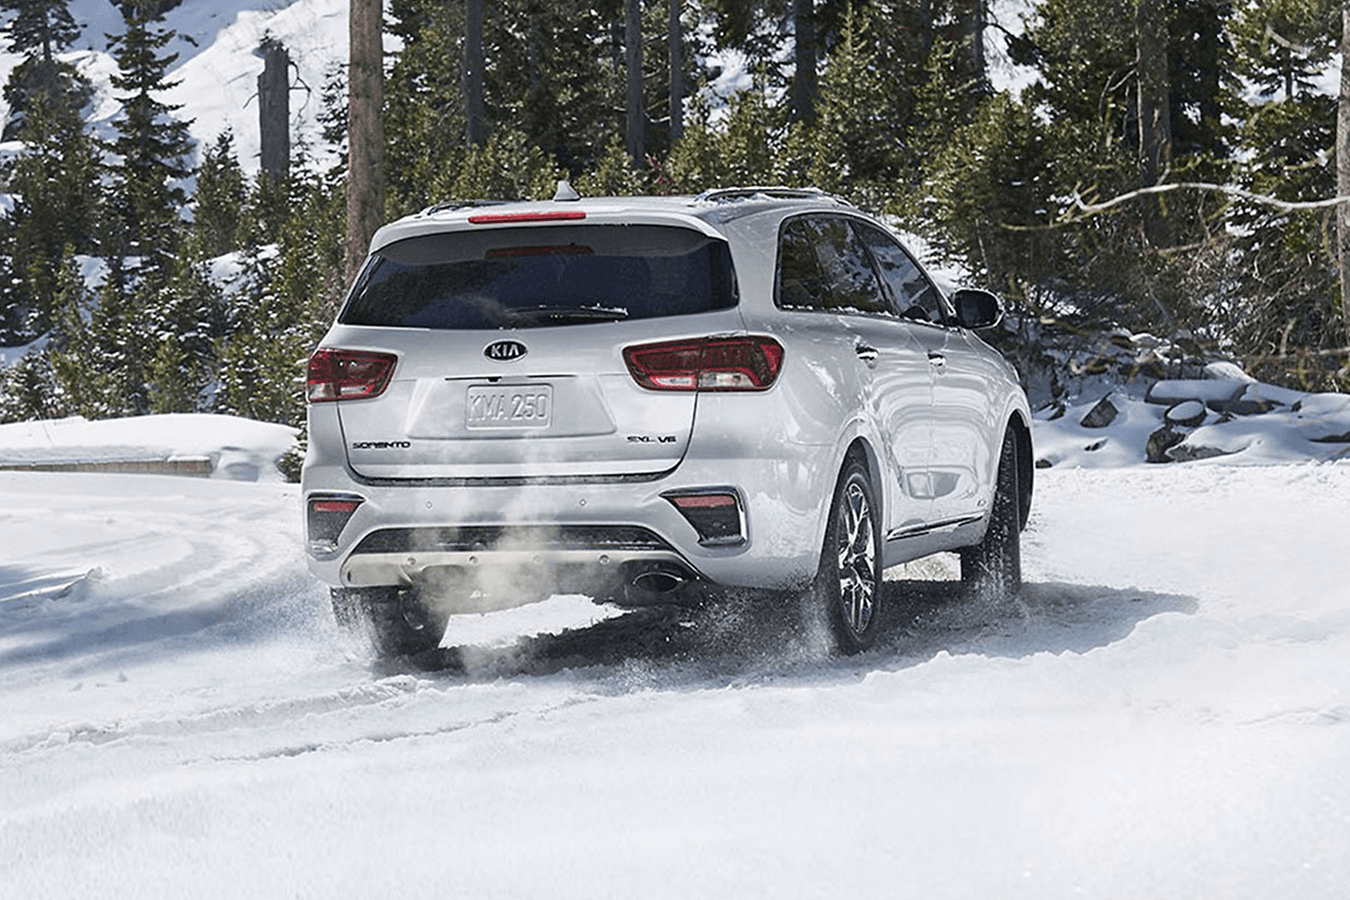 2019 Kia Sorento driving in snow